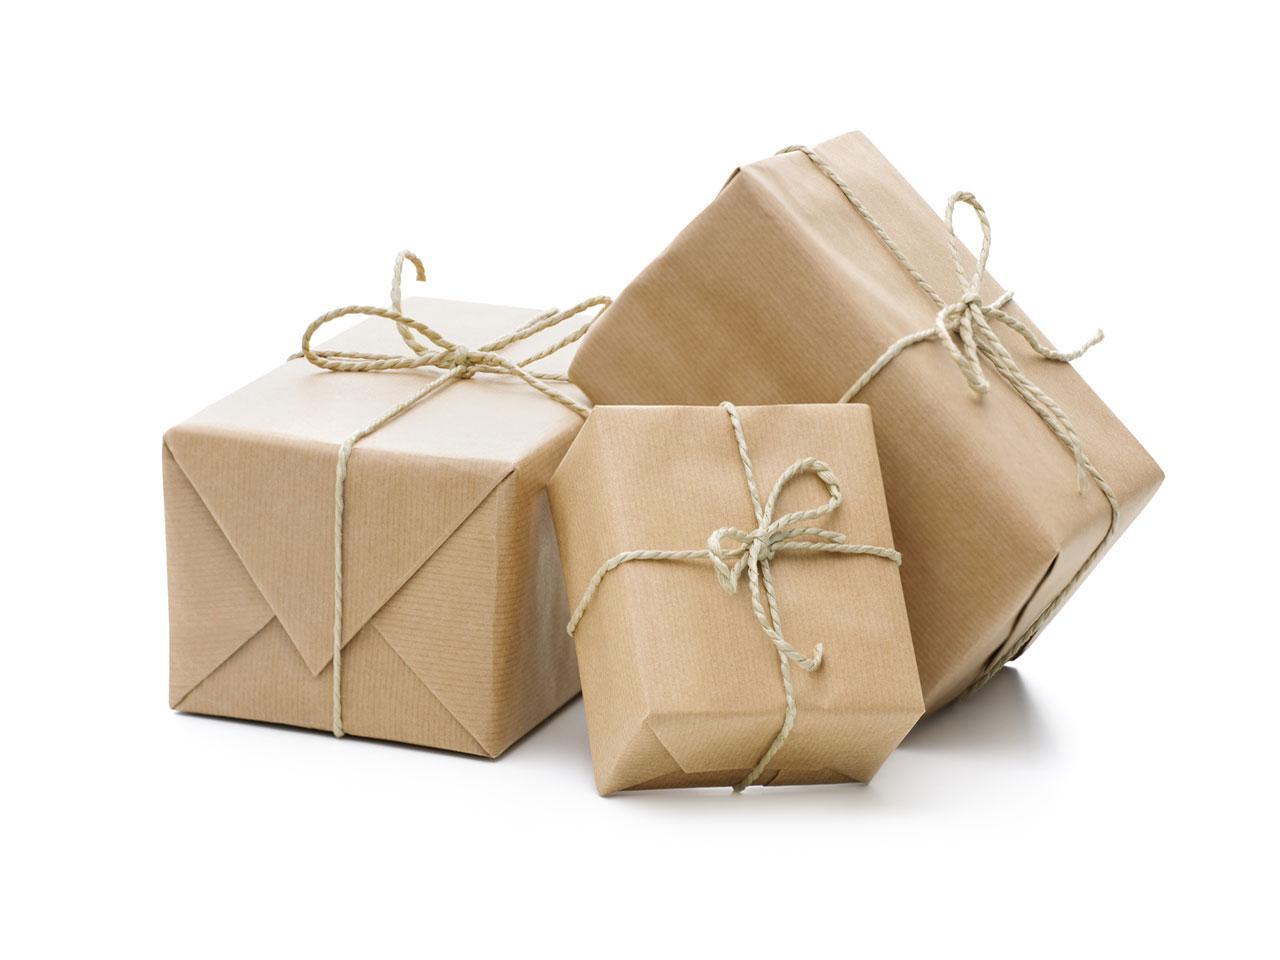 saving-money-on-food-6.jpg